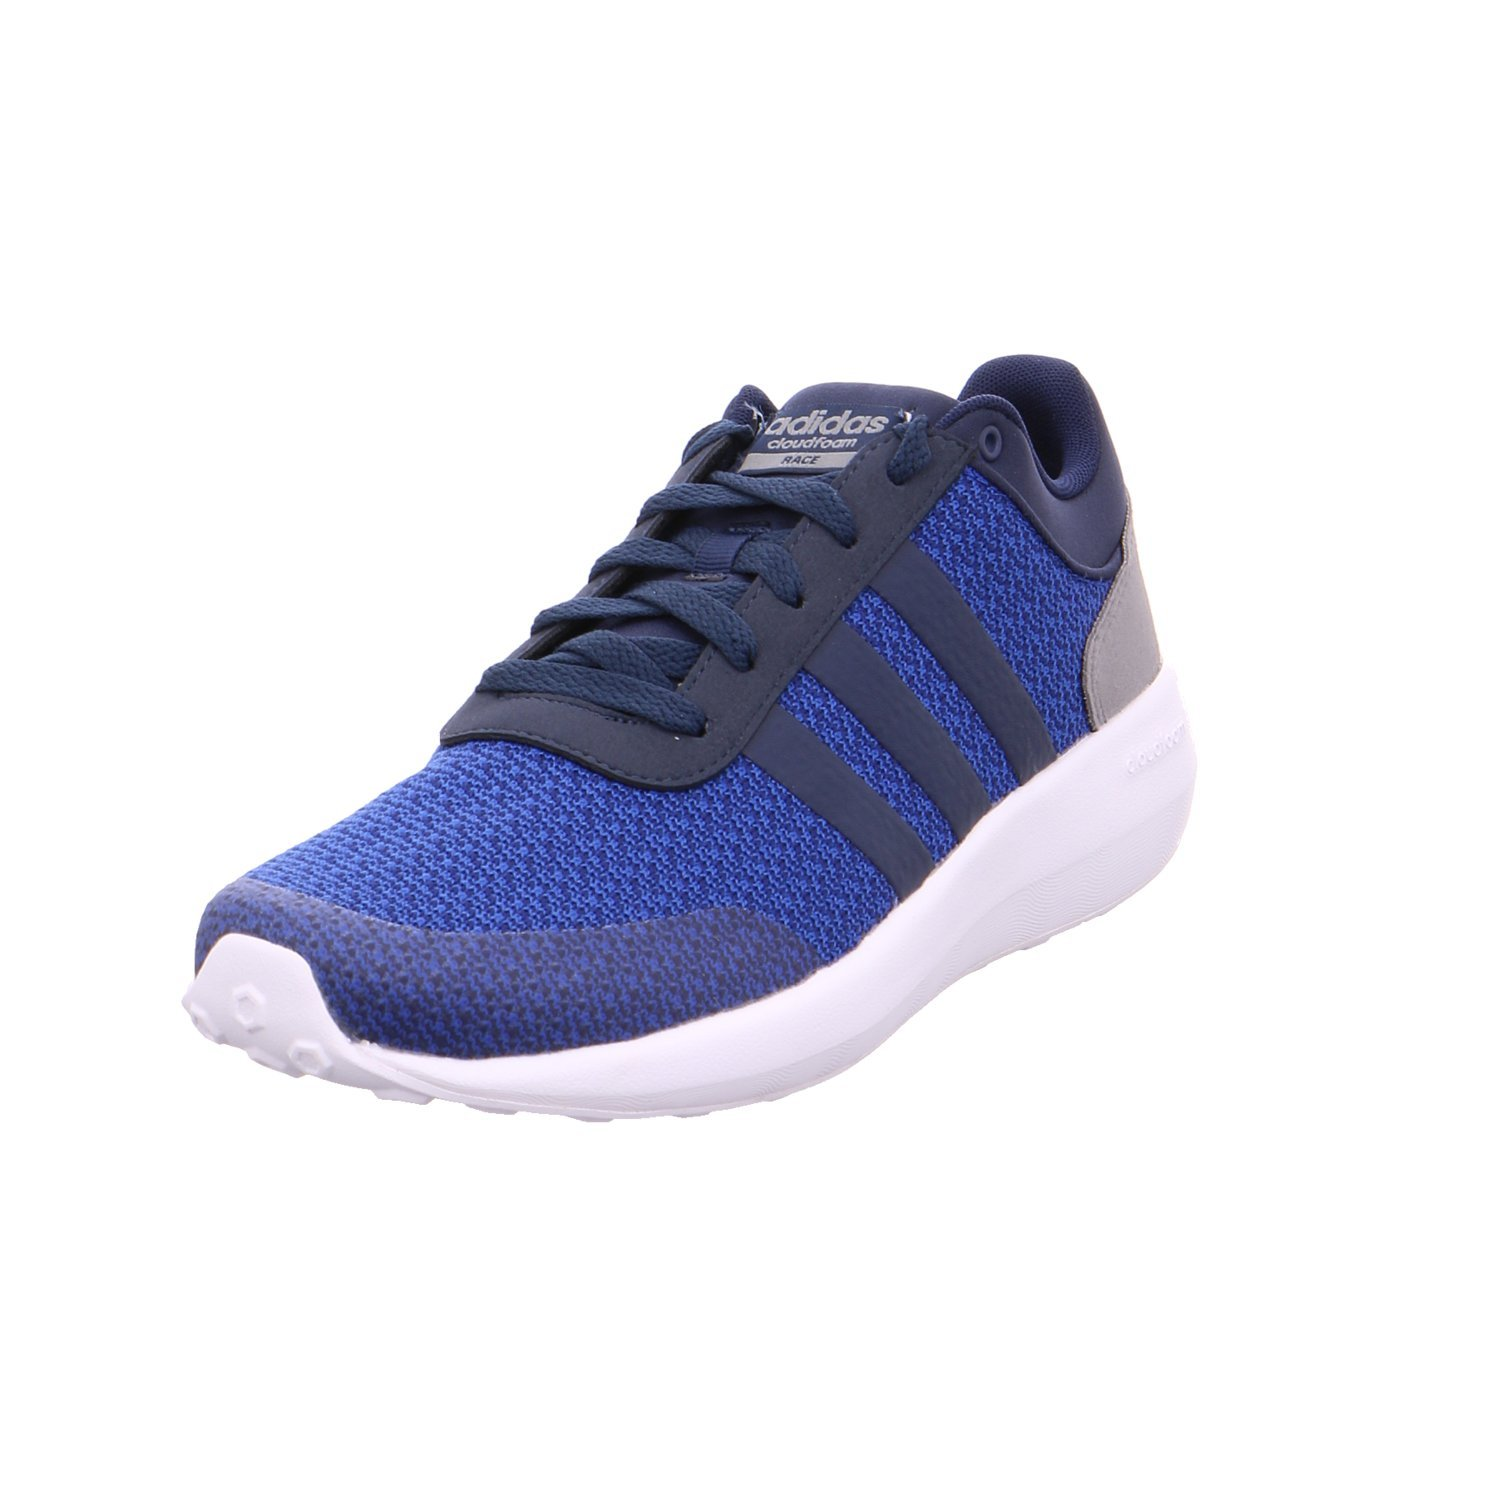 san francisco e06b5 2b6b7 adidas neo Mens Cf Race ConavyConavyCroyal Sneakers - 11 UKIndia (46  EU) Buy Online at Low Prices in India - Amazon.in